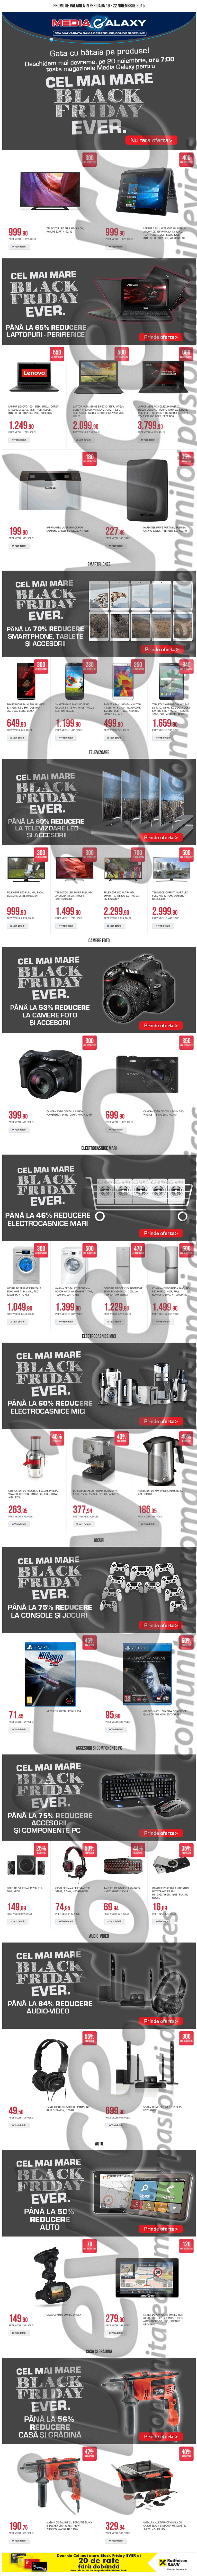 catalog de reduceri Media Galaxy Black Friday 2015